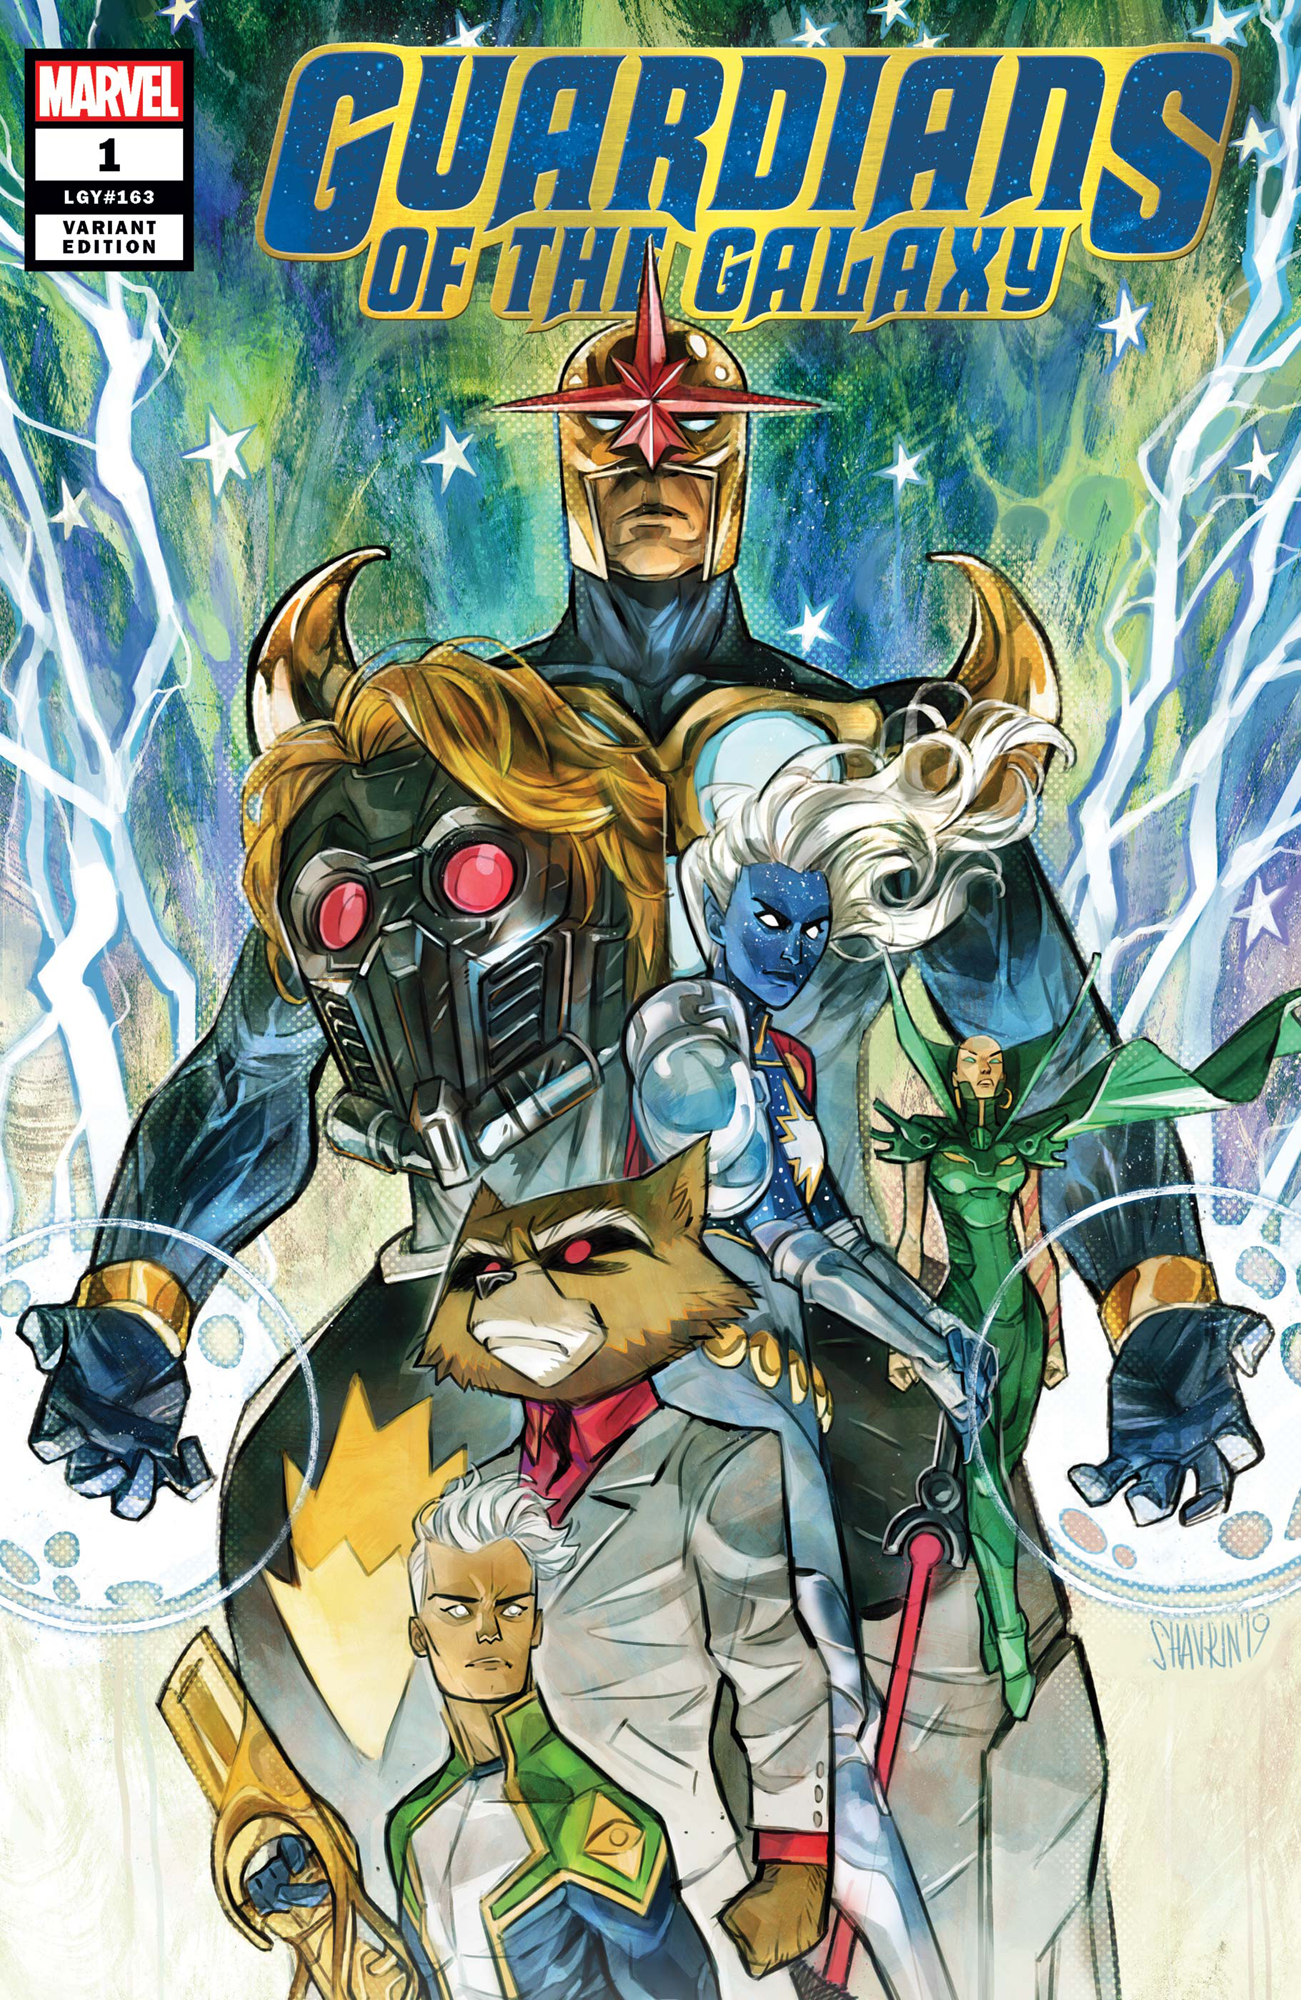 GUARDIANS OF THE GALAXY #1 SHAVRIN VAR